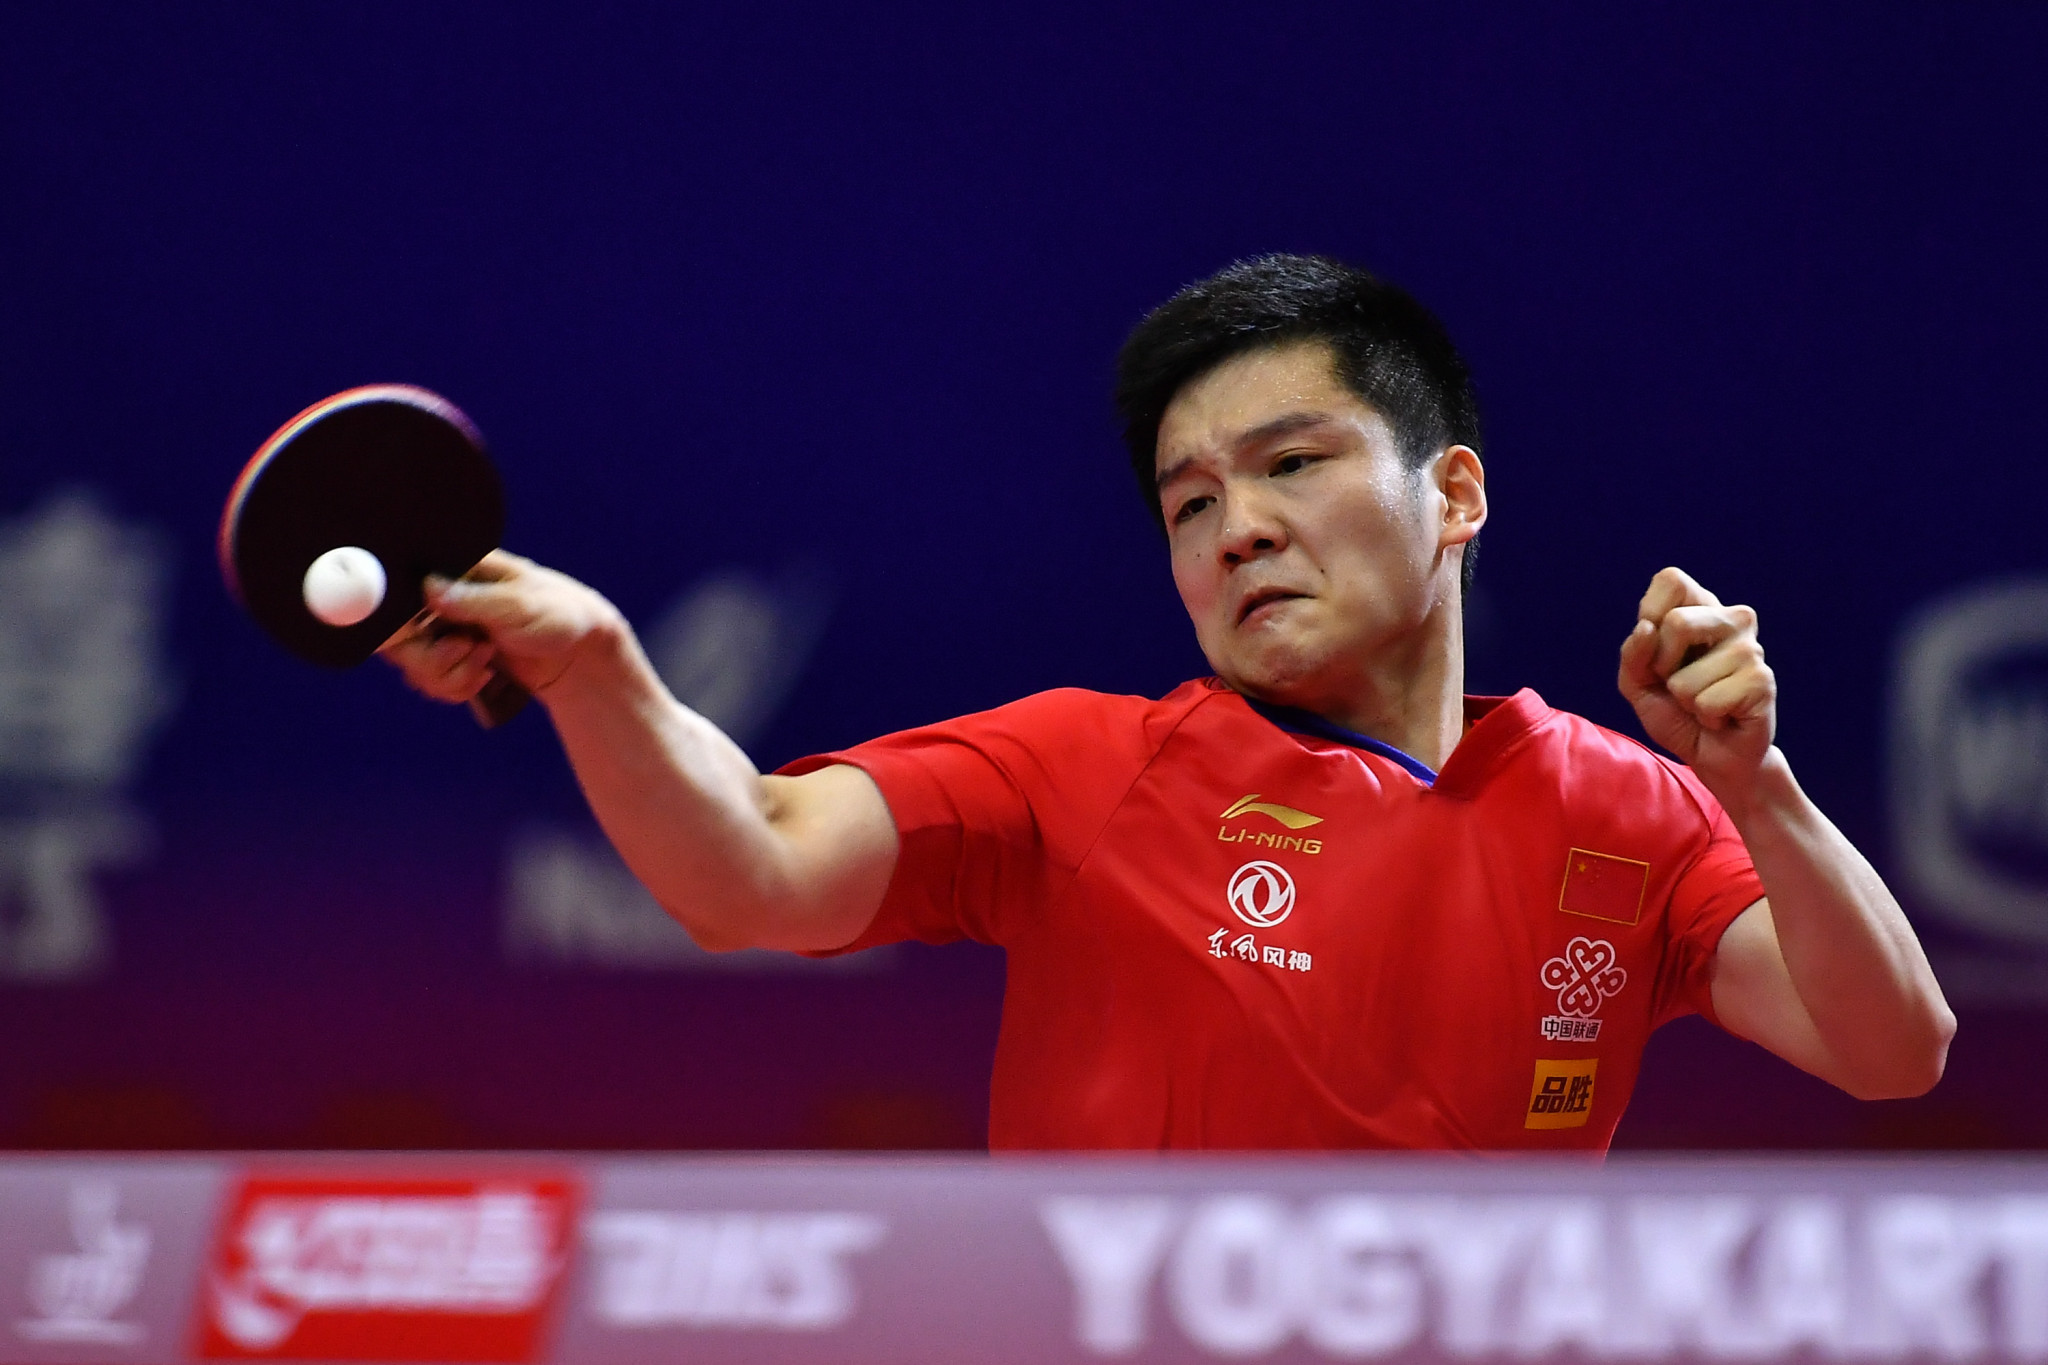 Fan Zhendong eased into the quarter-finals ©Getty Images